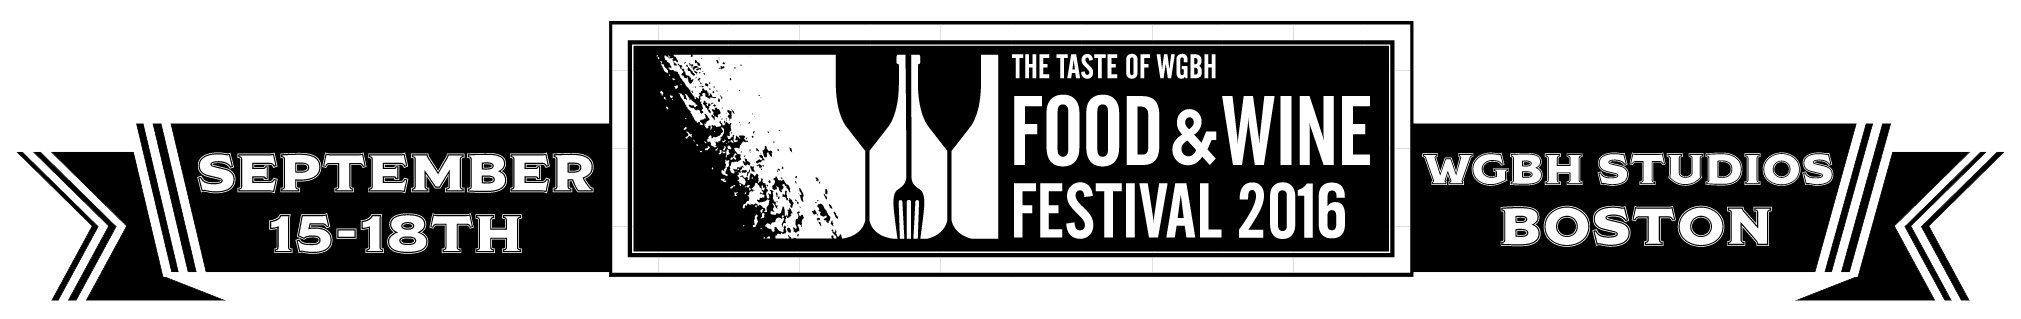 The Taste of WGBH 2016 Food and Wine Festival